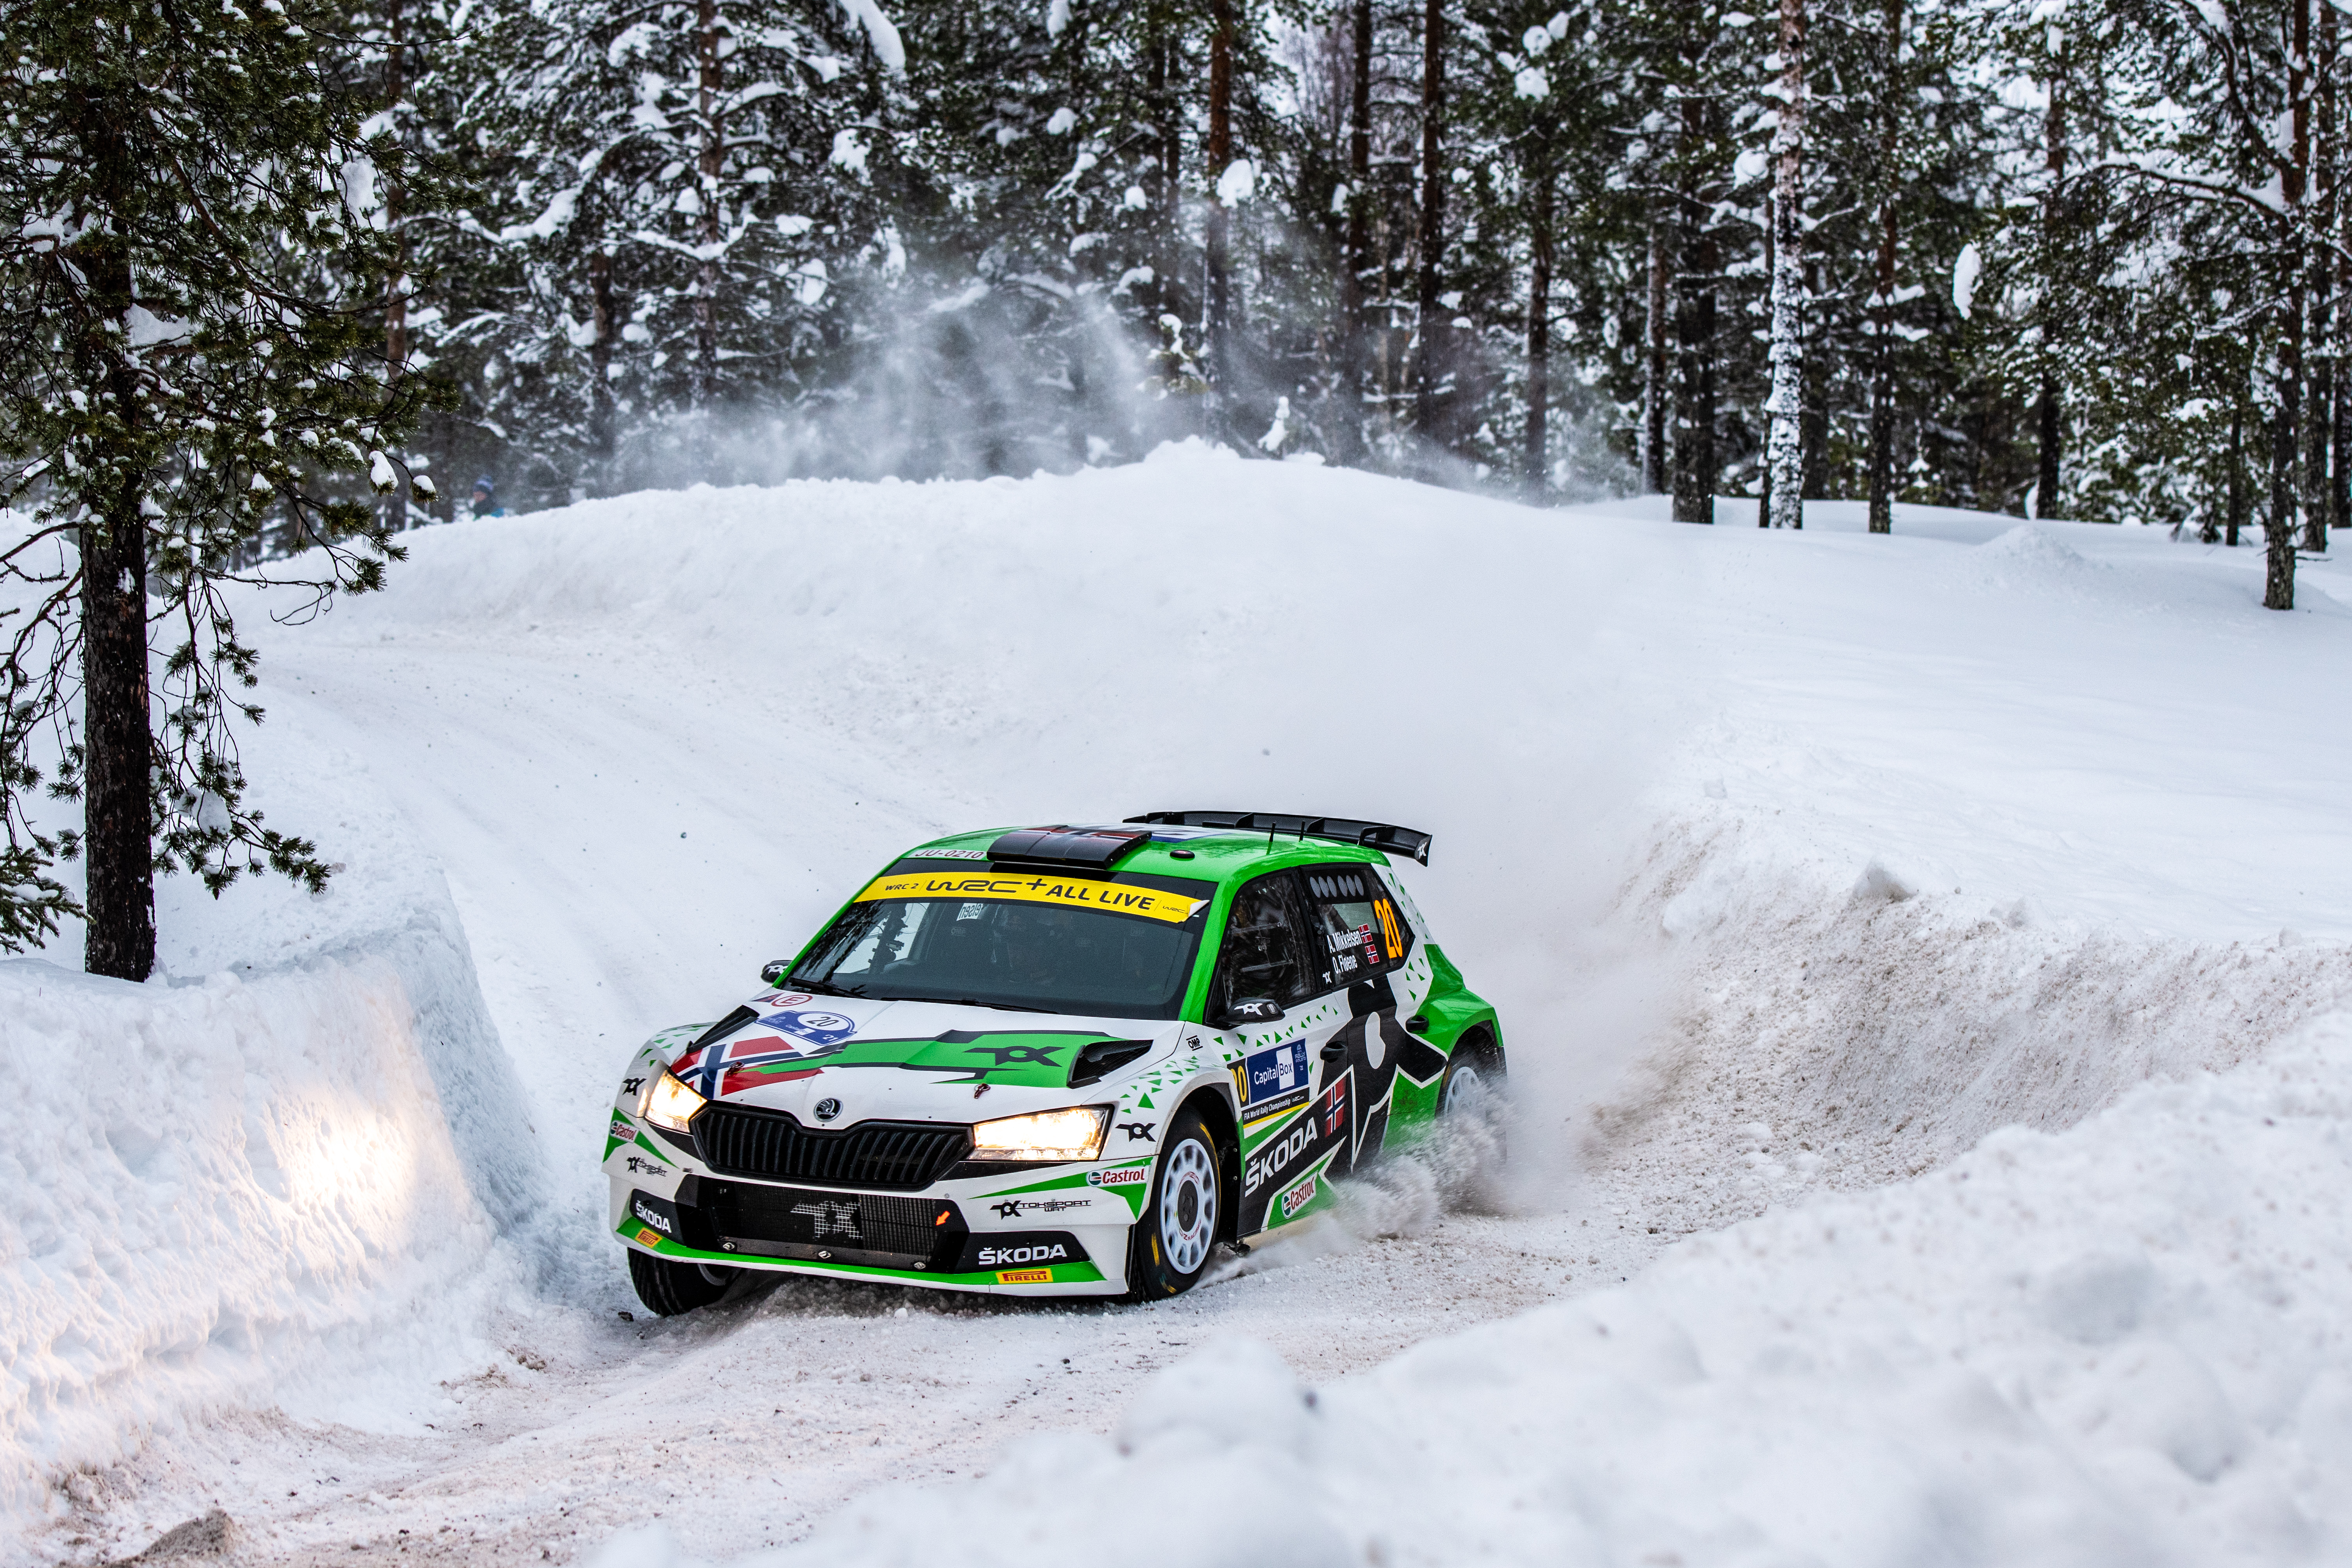 Arctic Rally Finland: SKODA Motorsport supported Andreas Mikkelsen finishes Friday leg third in WRC2 - Image 1